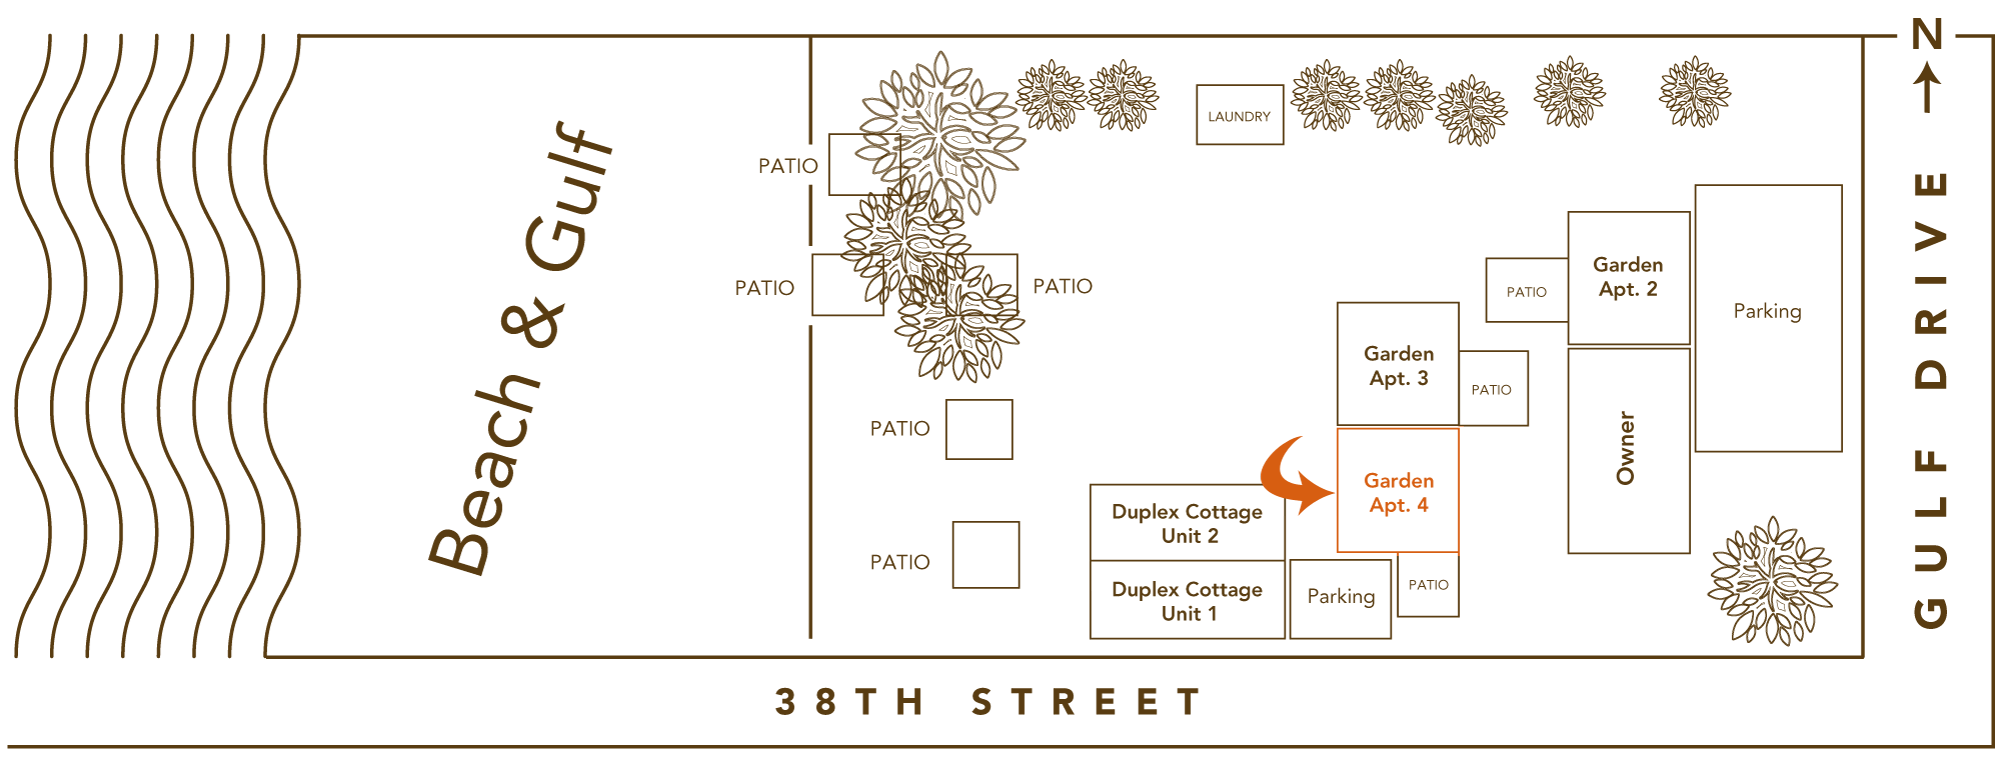 Bamboo Apartments Site Plan